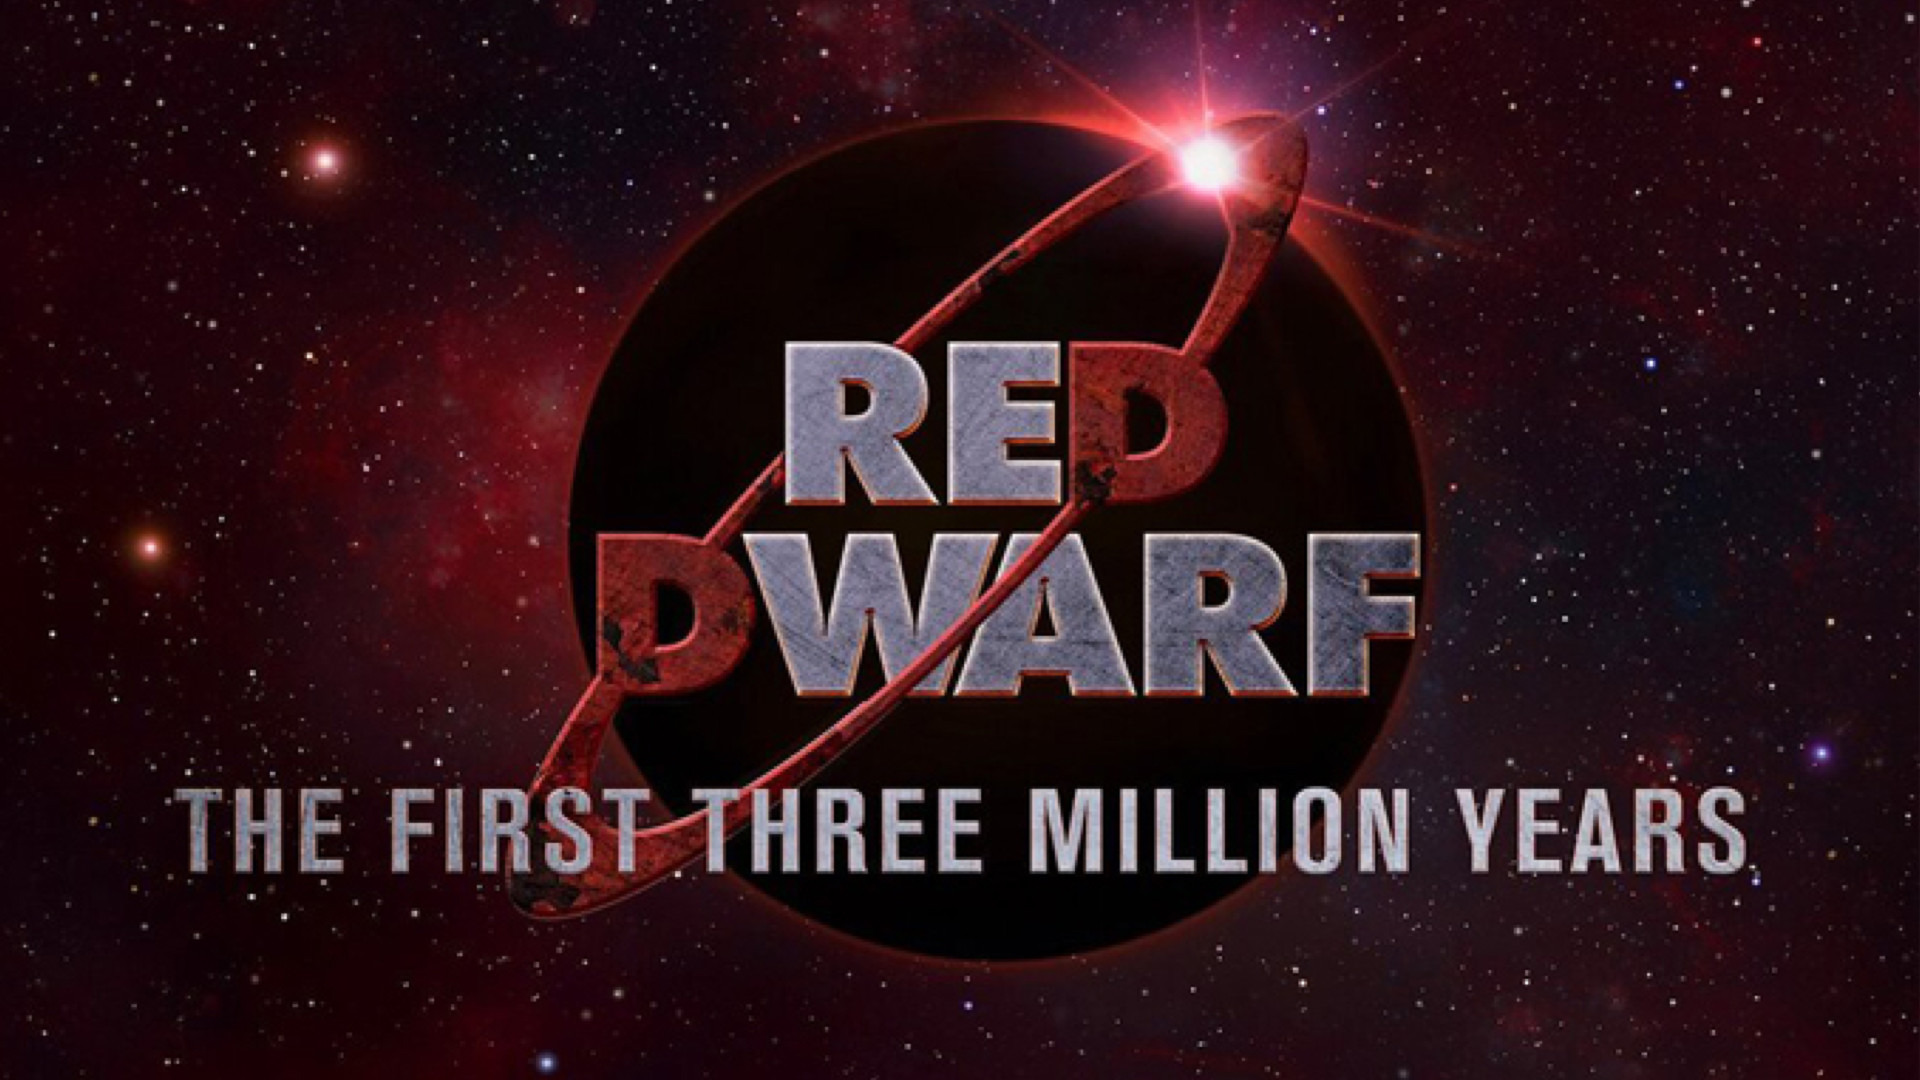 Show Red Dwarf: The First Three Million Years